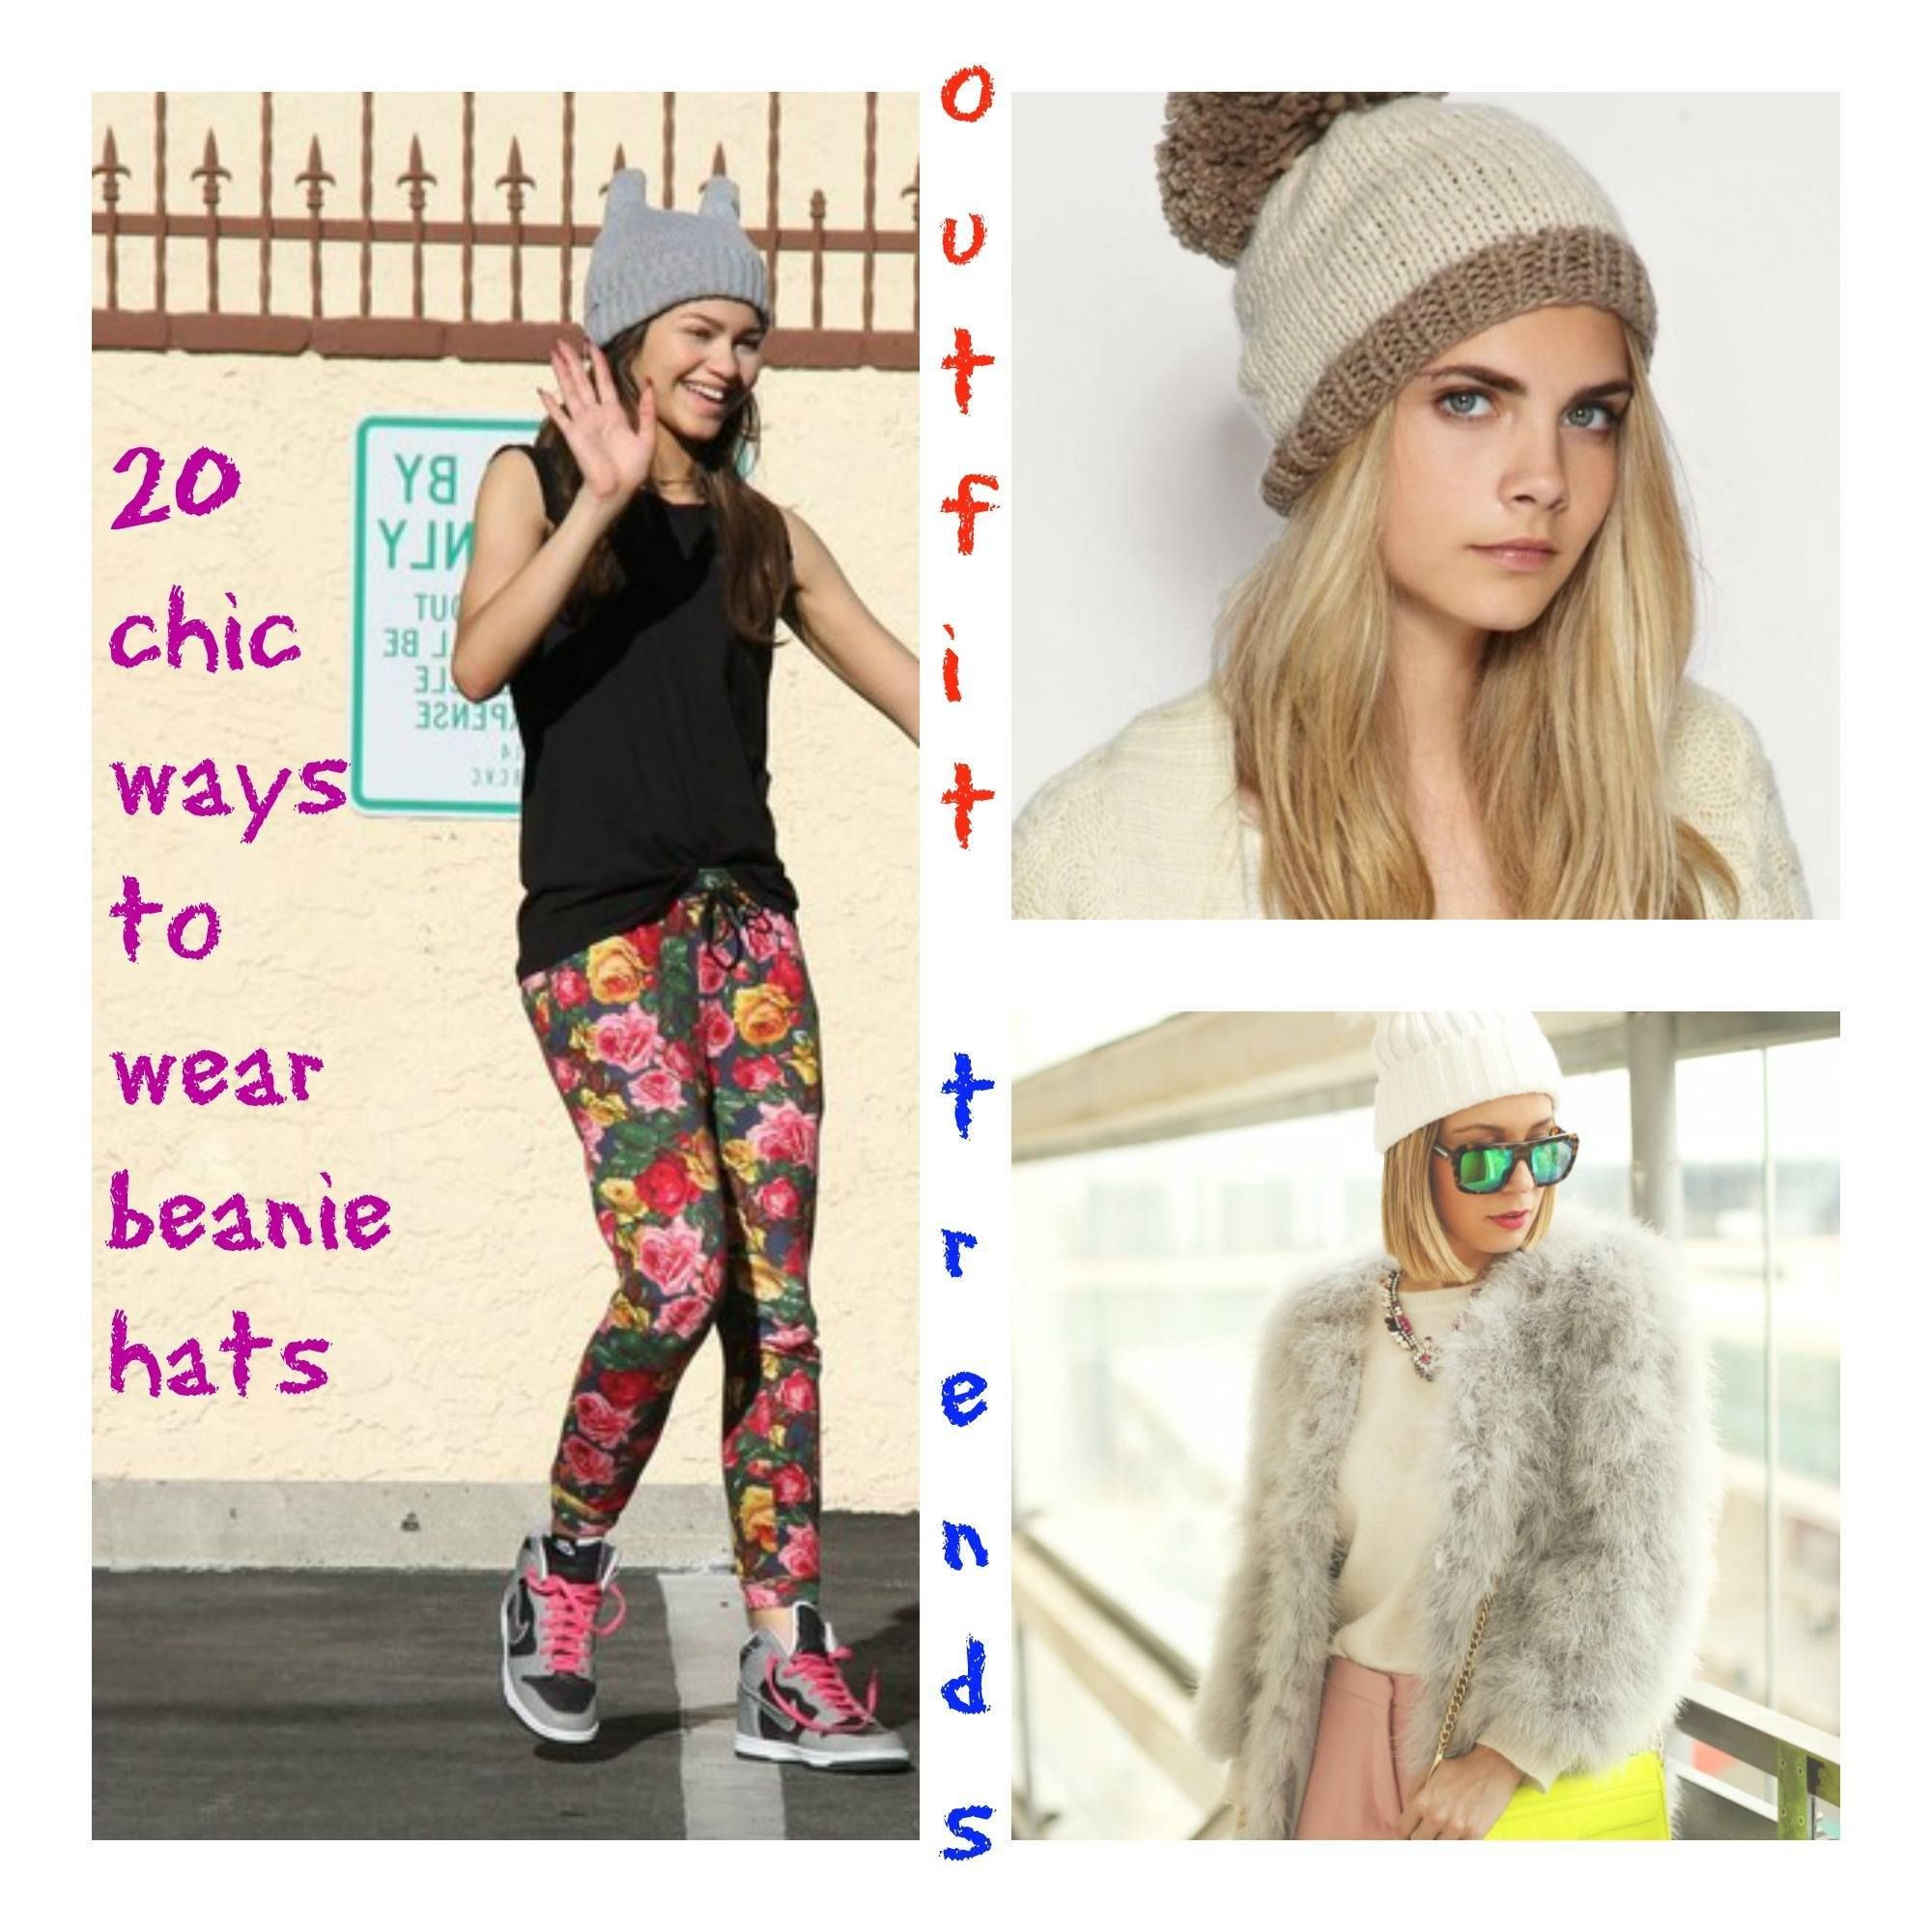 How to Wear Beanie Hats 20 Chic Outfits to Wear with Beanies